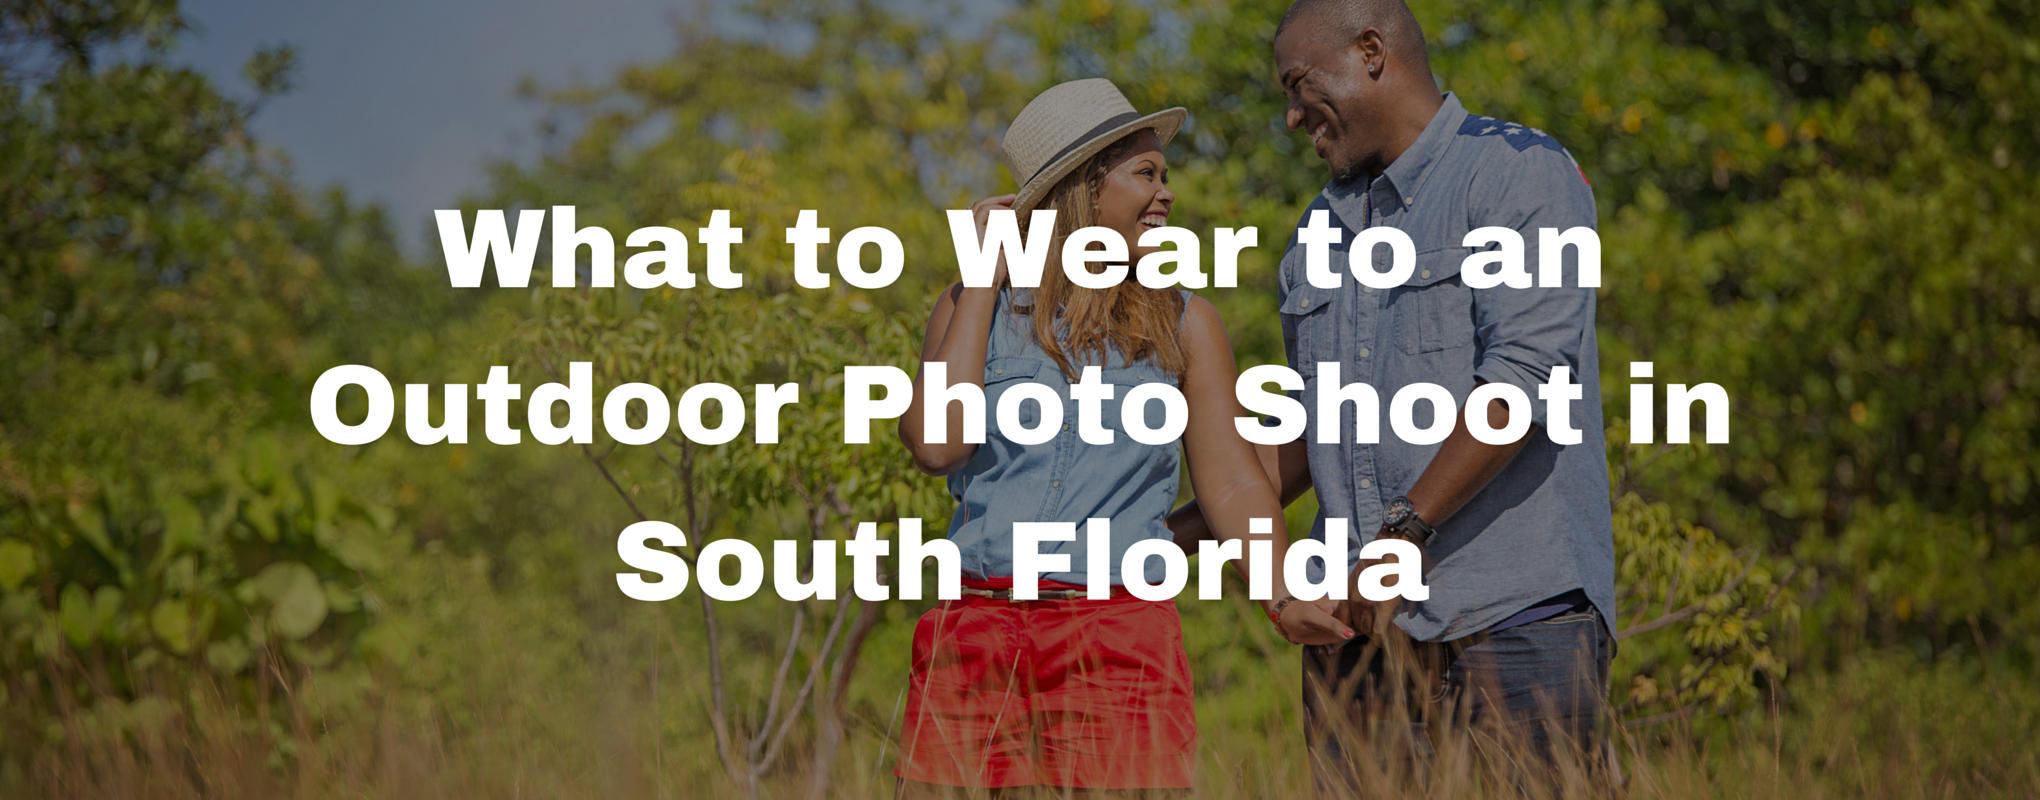 What to Wear to an Outdoor Photo Shoot in South Florida